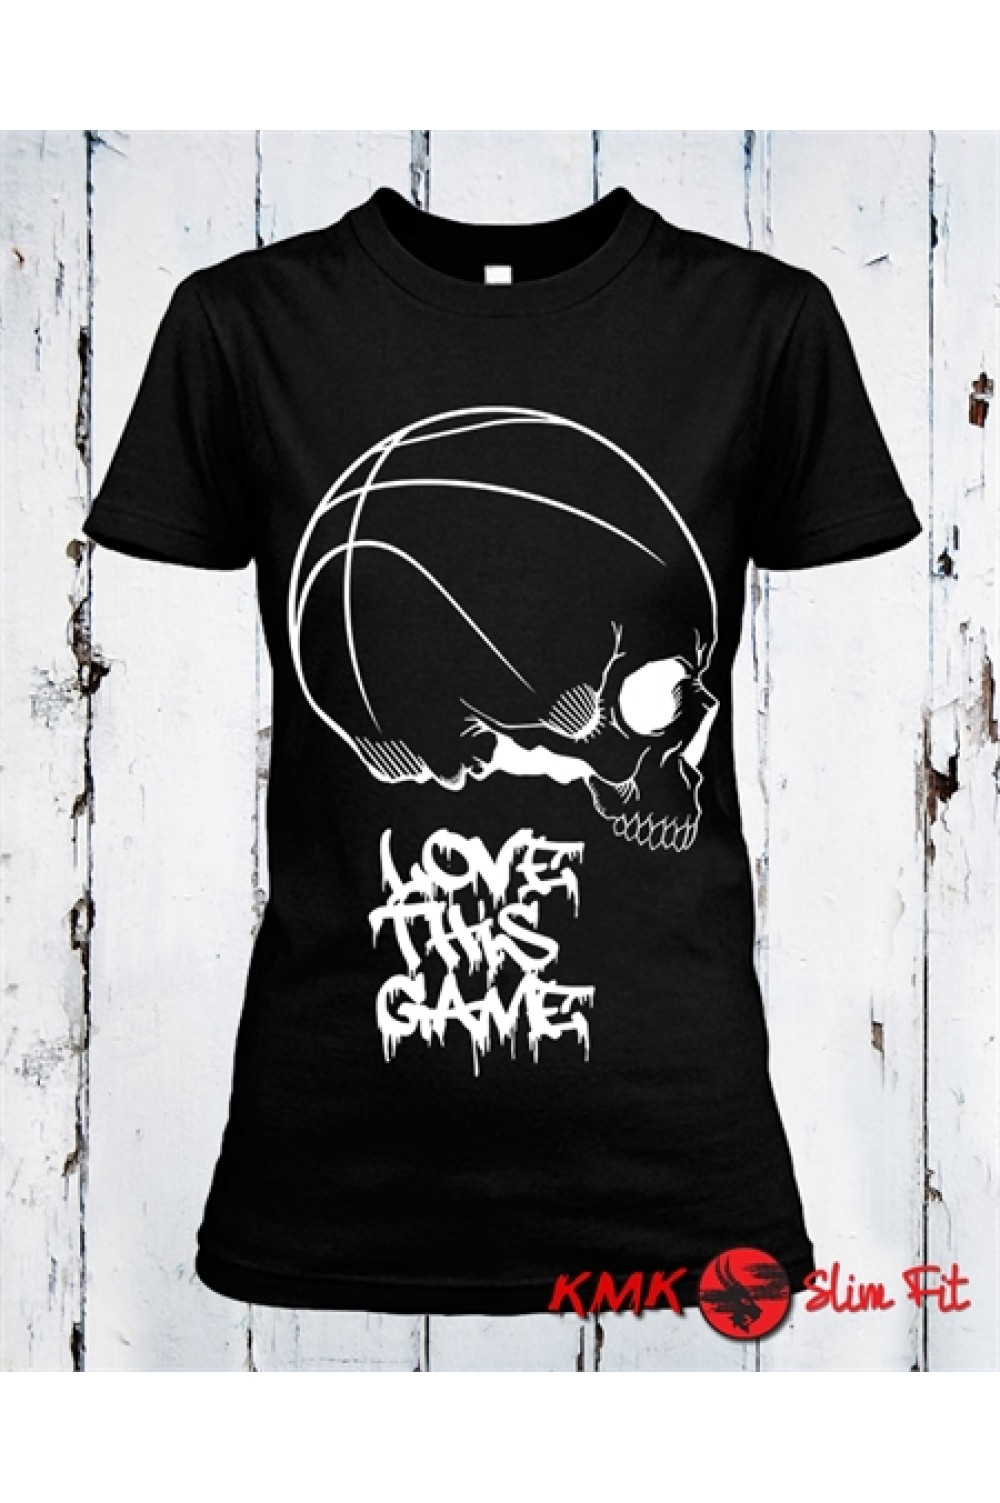 Basketball Skull Printed T shirt | Basketball Tanktop | Sport Tee | Motivation Shirt